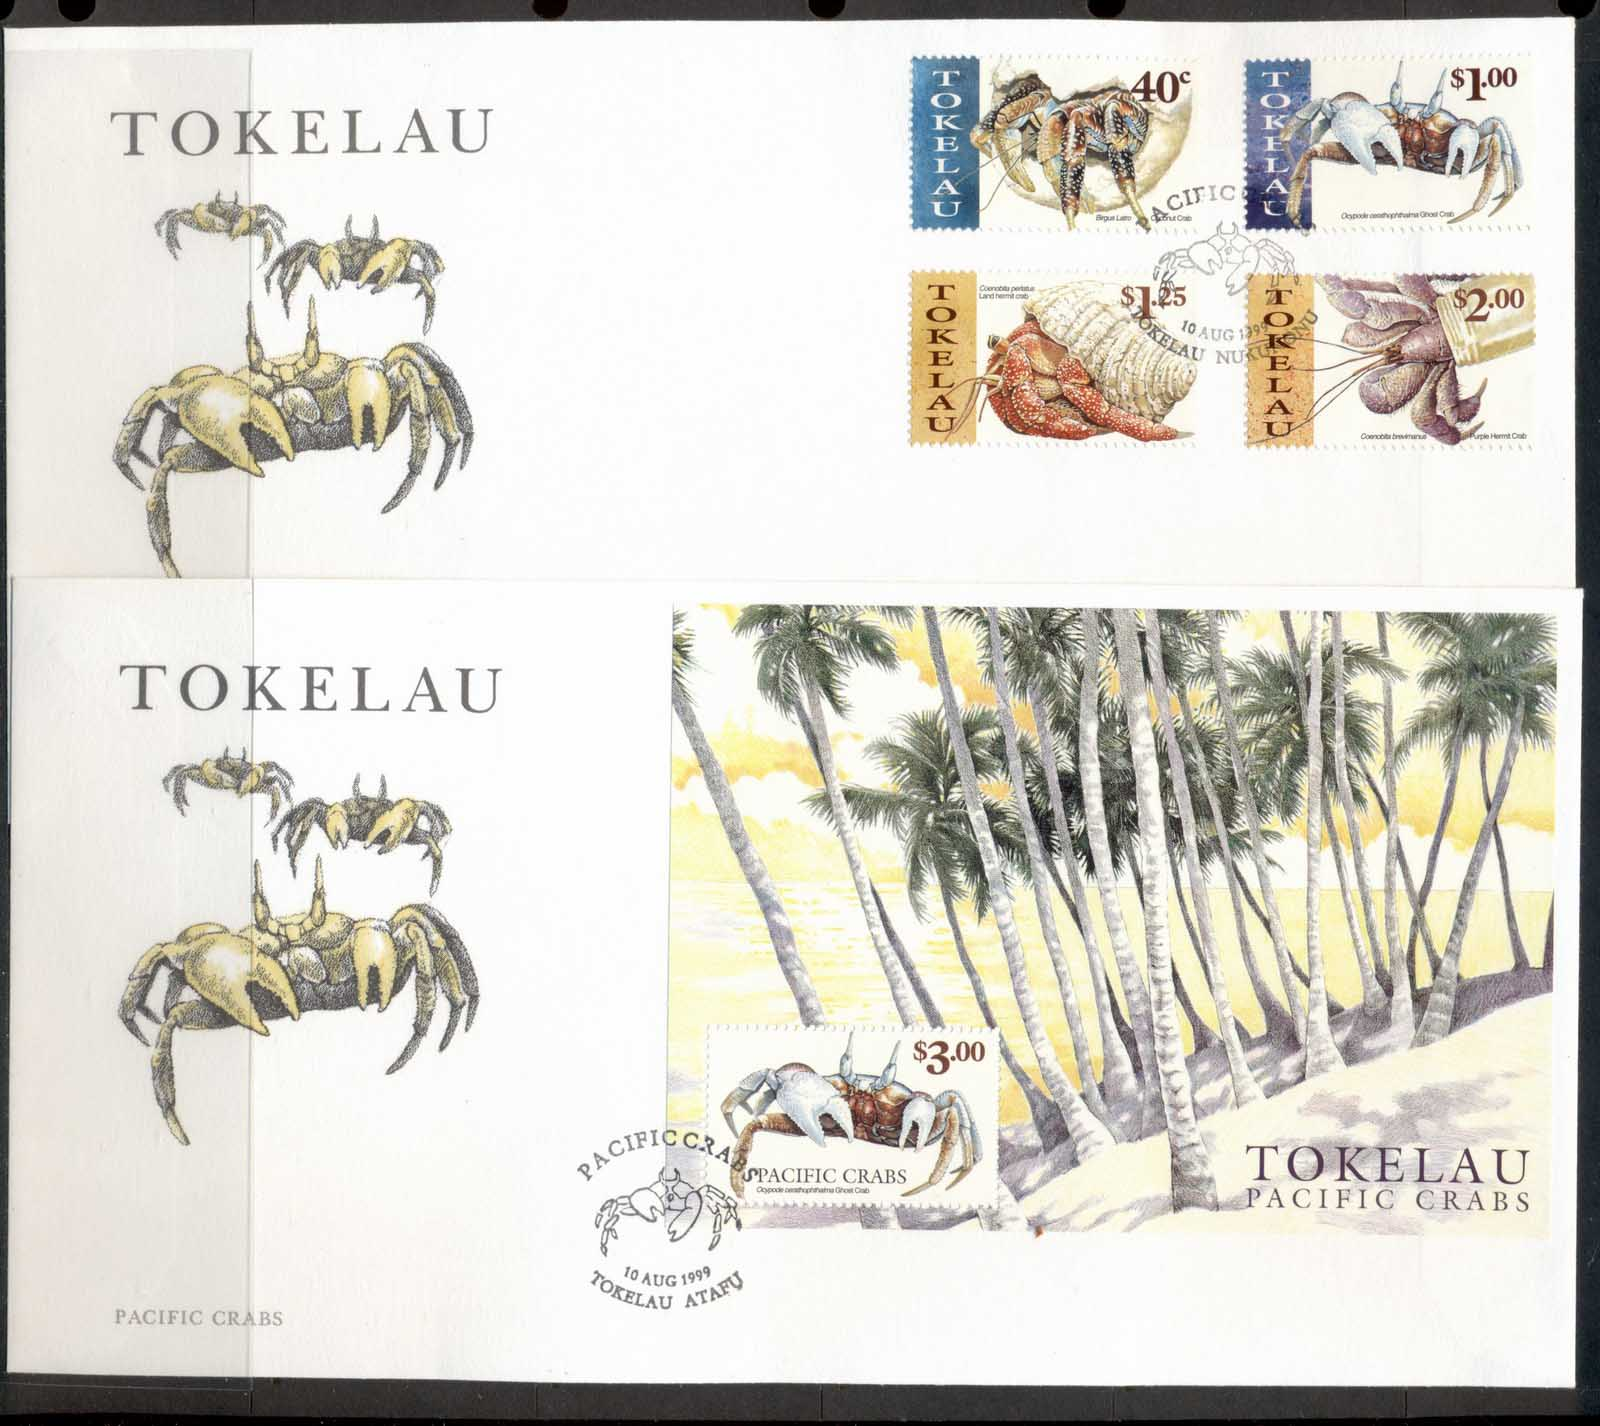 Tokelau 1999 Pacific Crabs 2xFDC